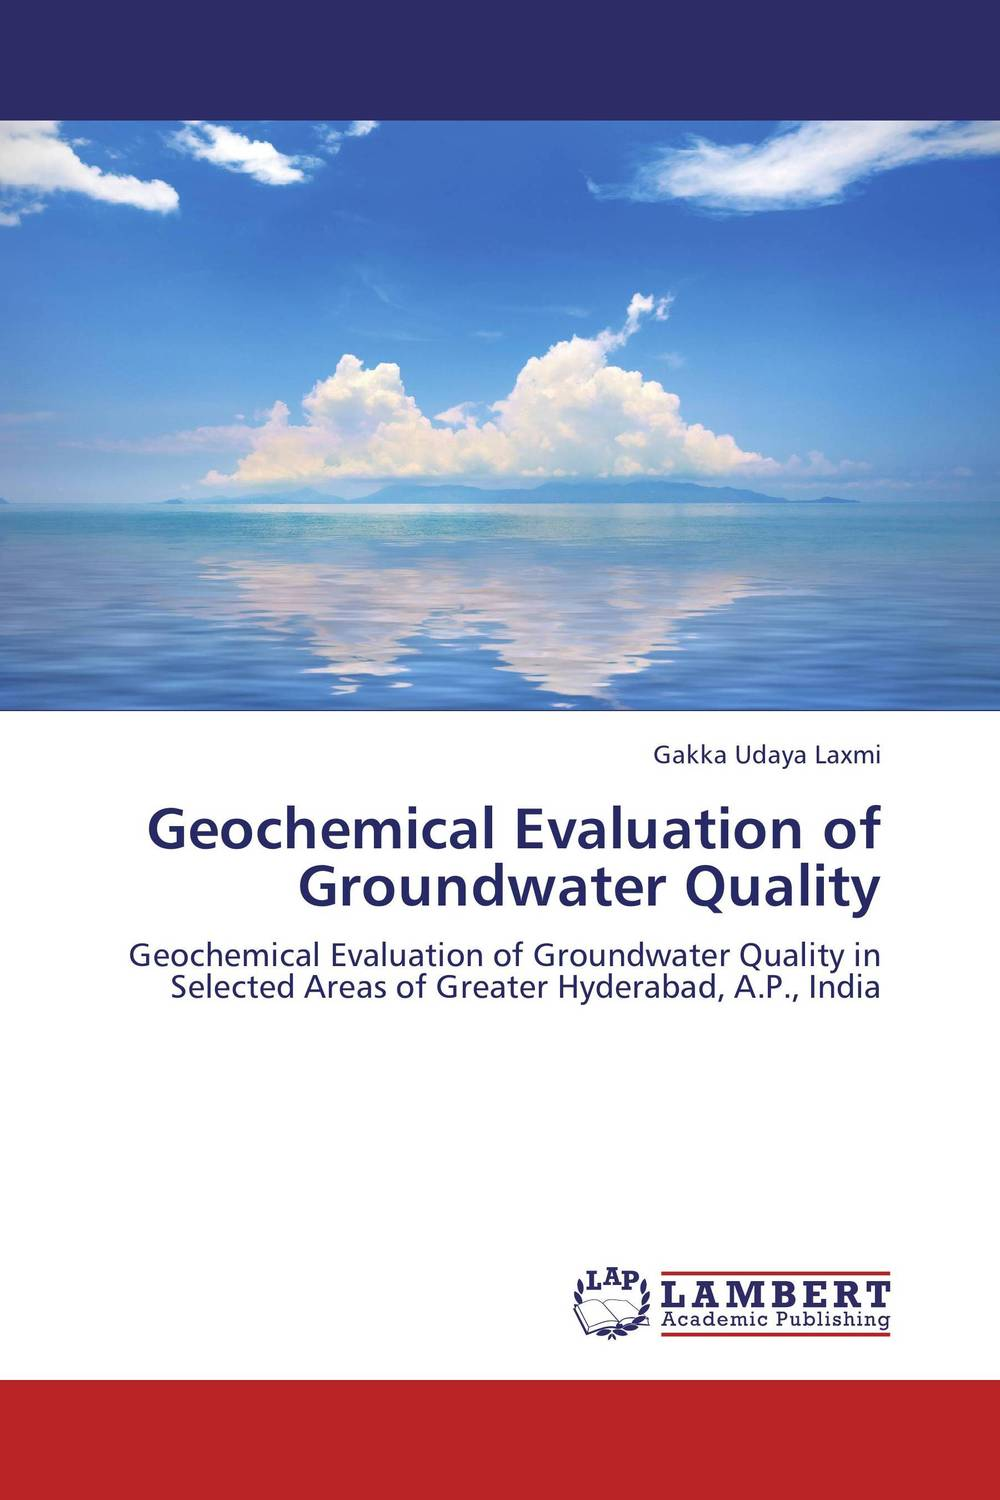 Geochemical Evaluation of Groundwater Quality sources of chloride and its impact on groundwater